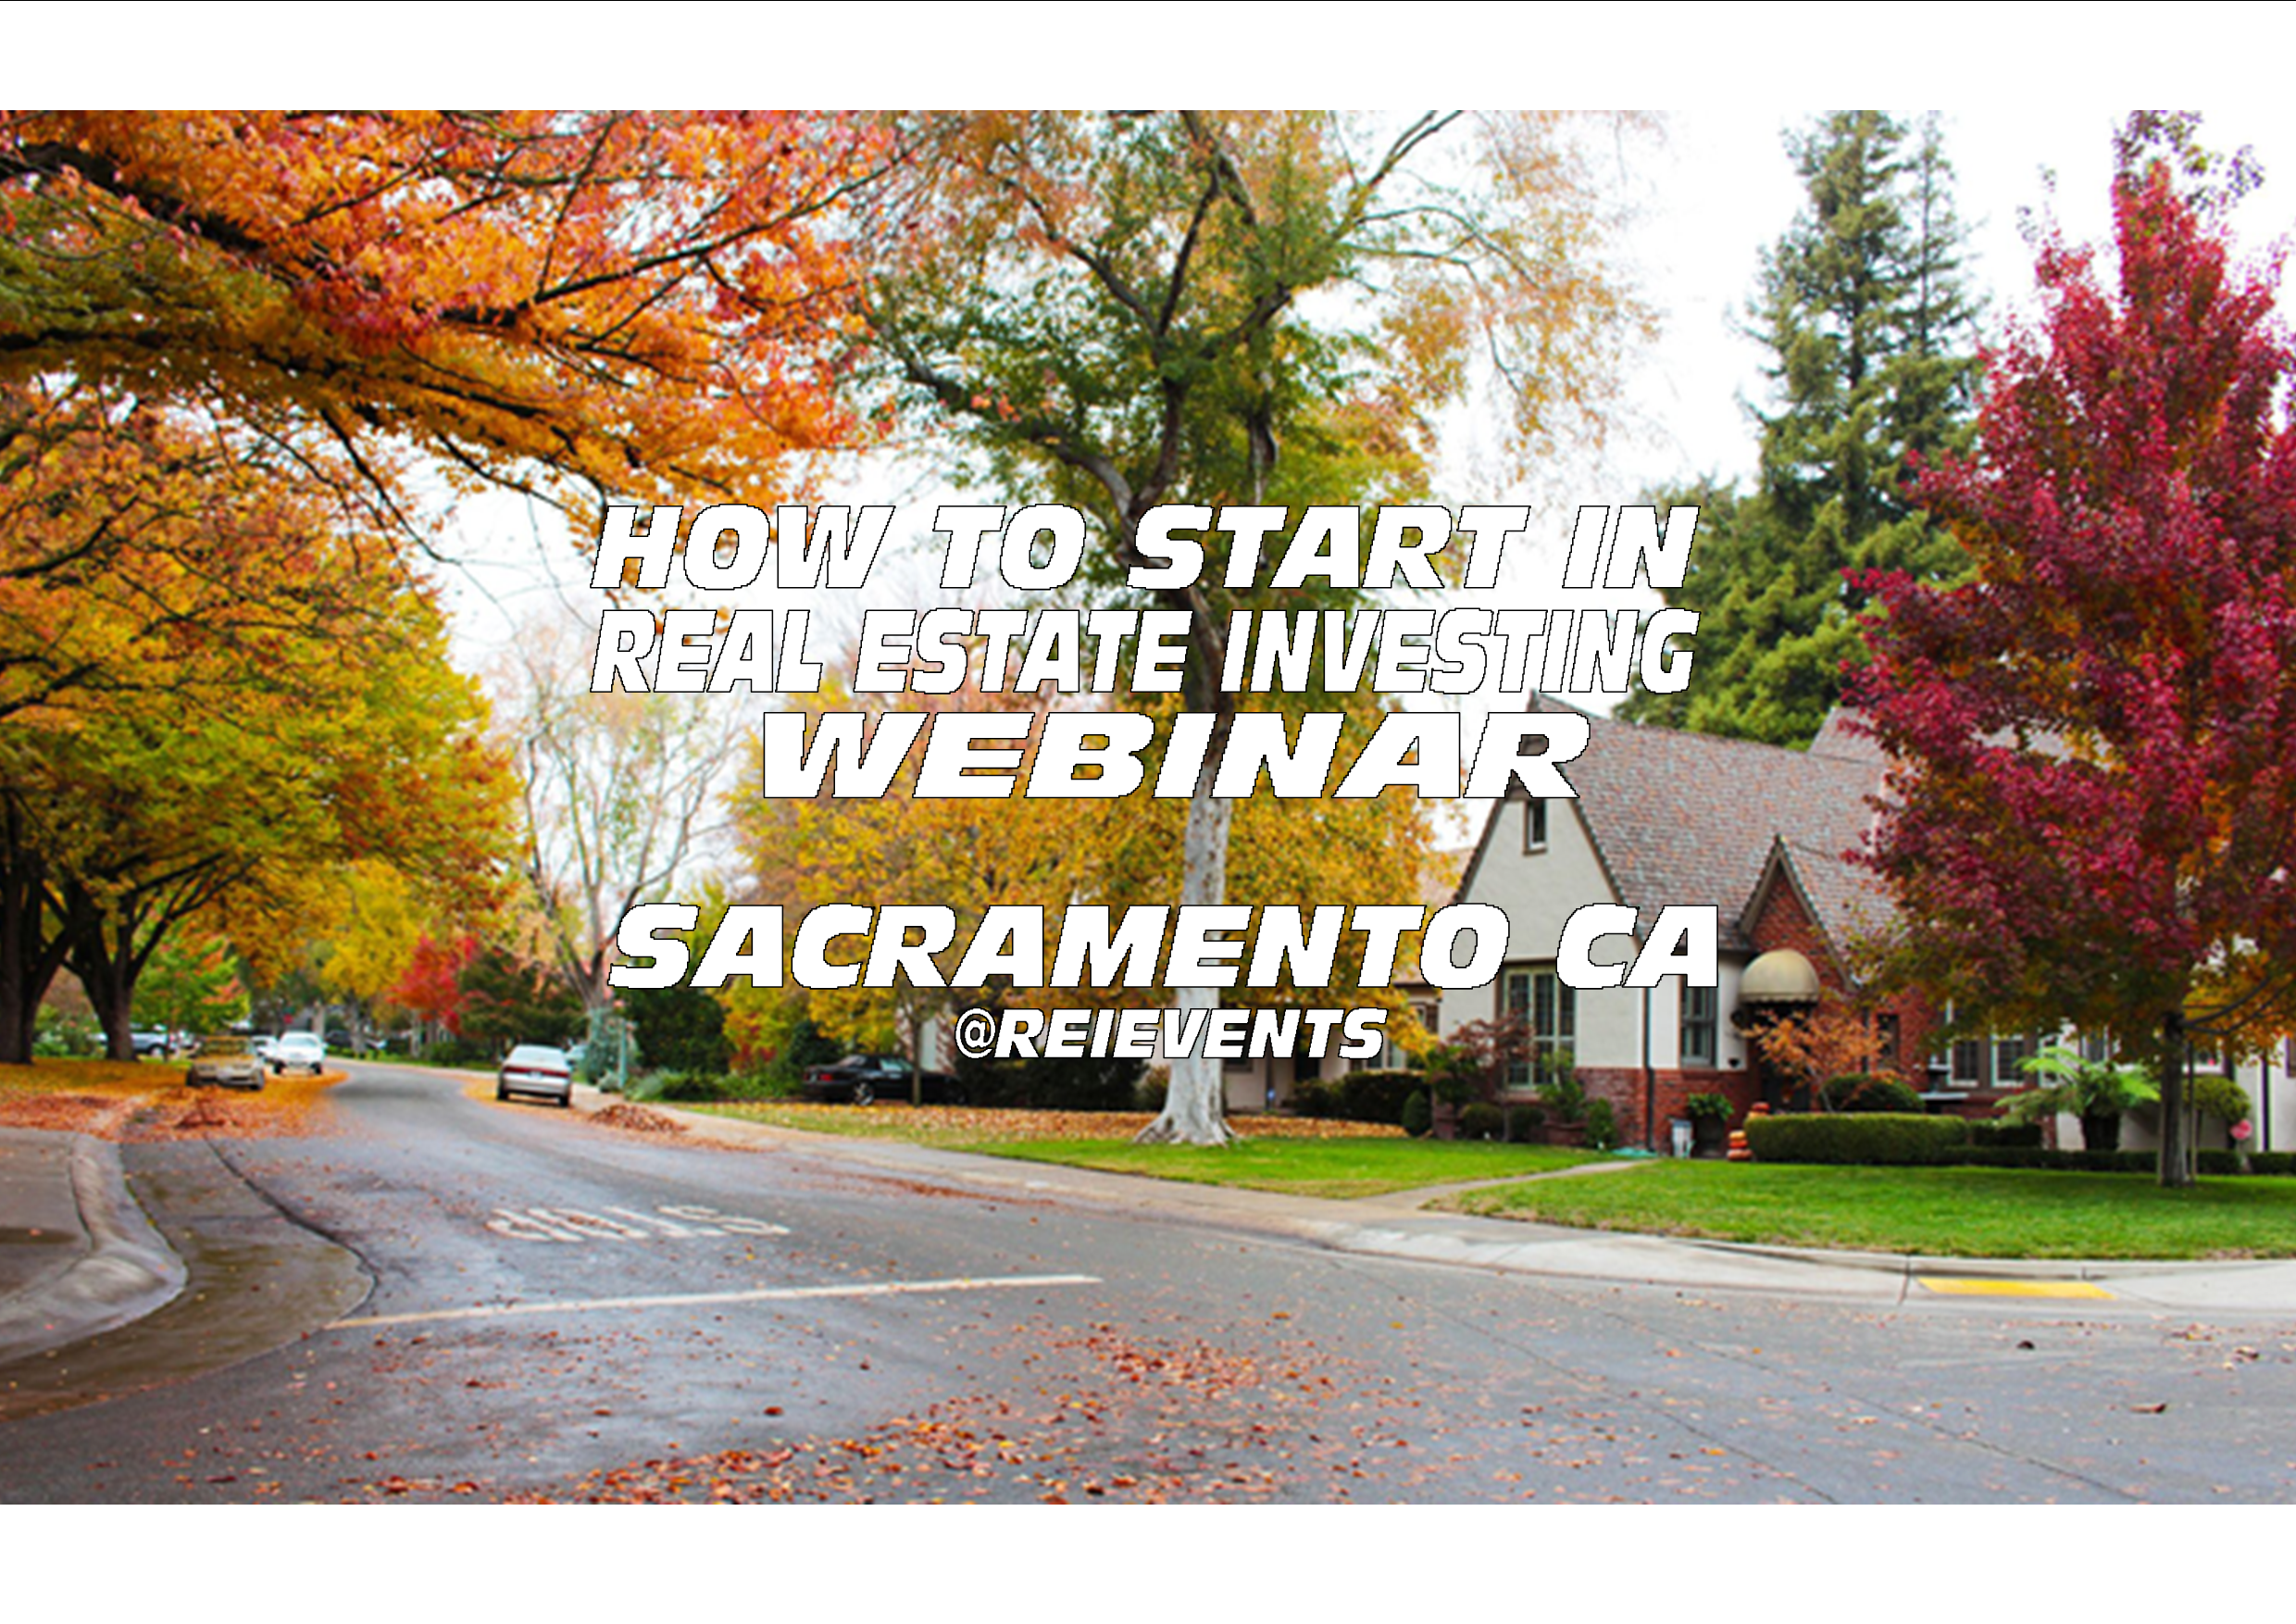 HOW TO START IN REAL ESTATE INVESTING - WEBINAR - SACRAMENTO, CA